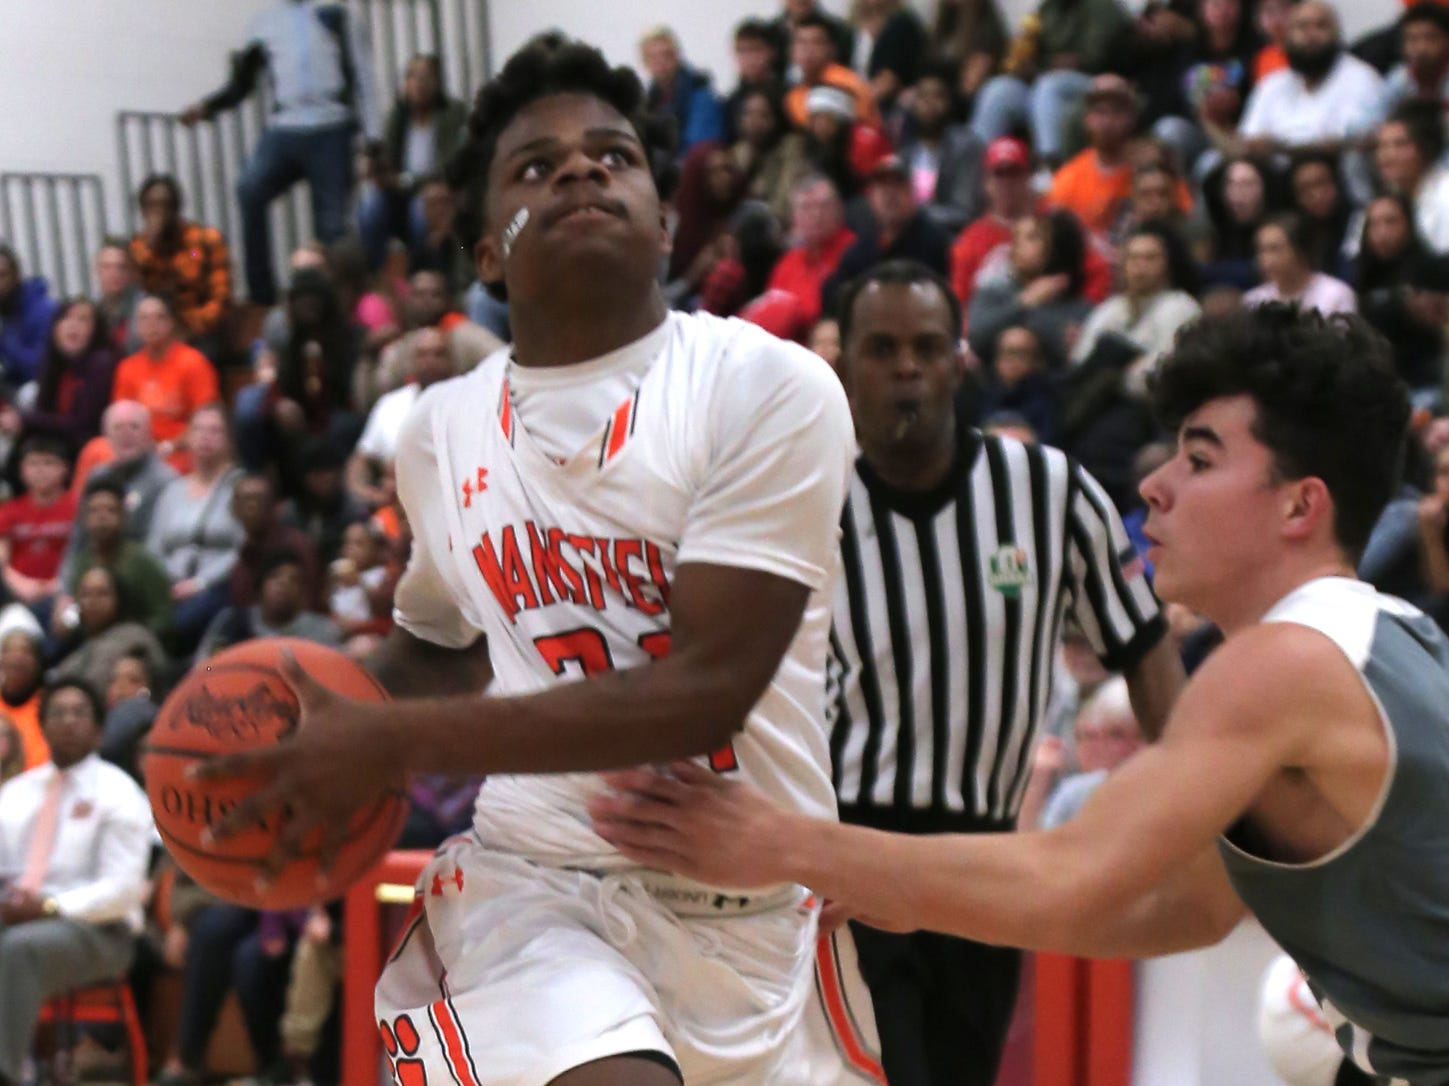 Mansfield Senior's Angelo Grose attempts a jump shot at Malabar Middle School on Friday Night.